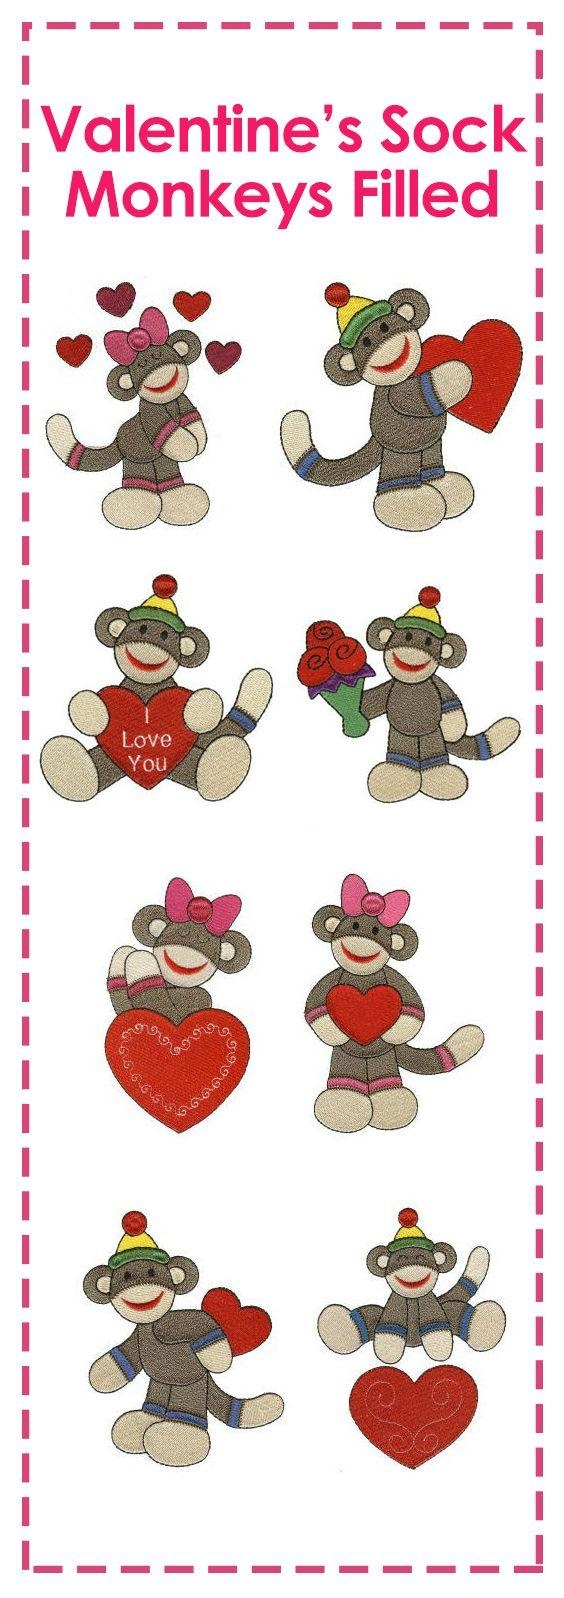 542 Best Diy Sock Monkey Parties Etc. Images On Pinterest | Sock intended for Sock Monkey Wall Art